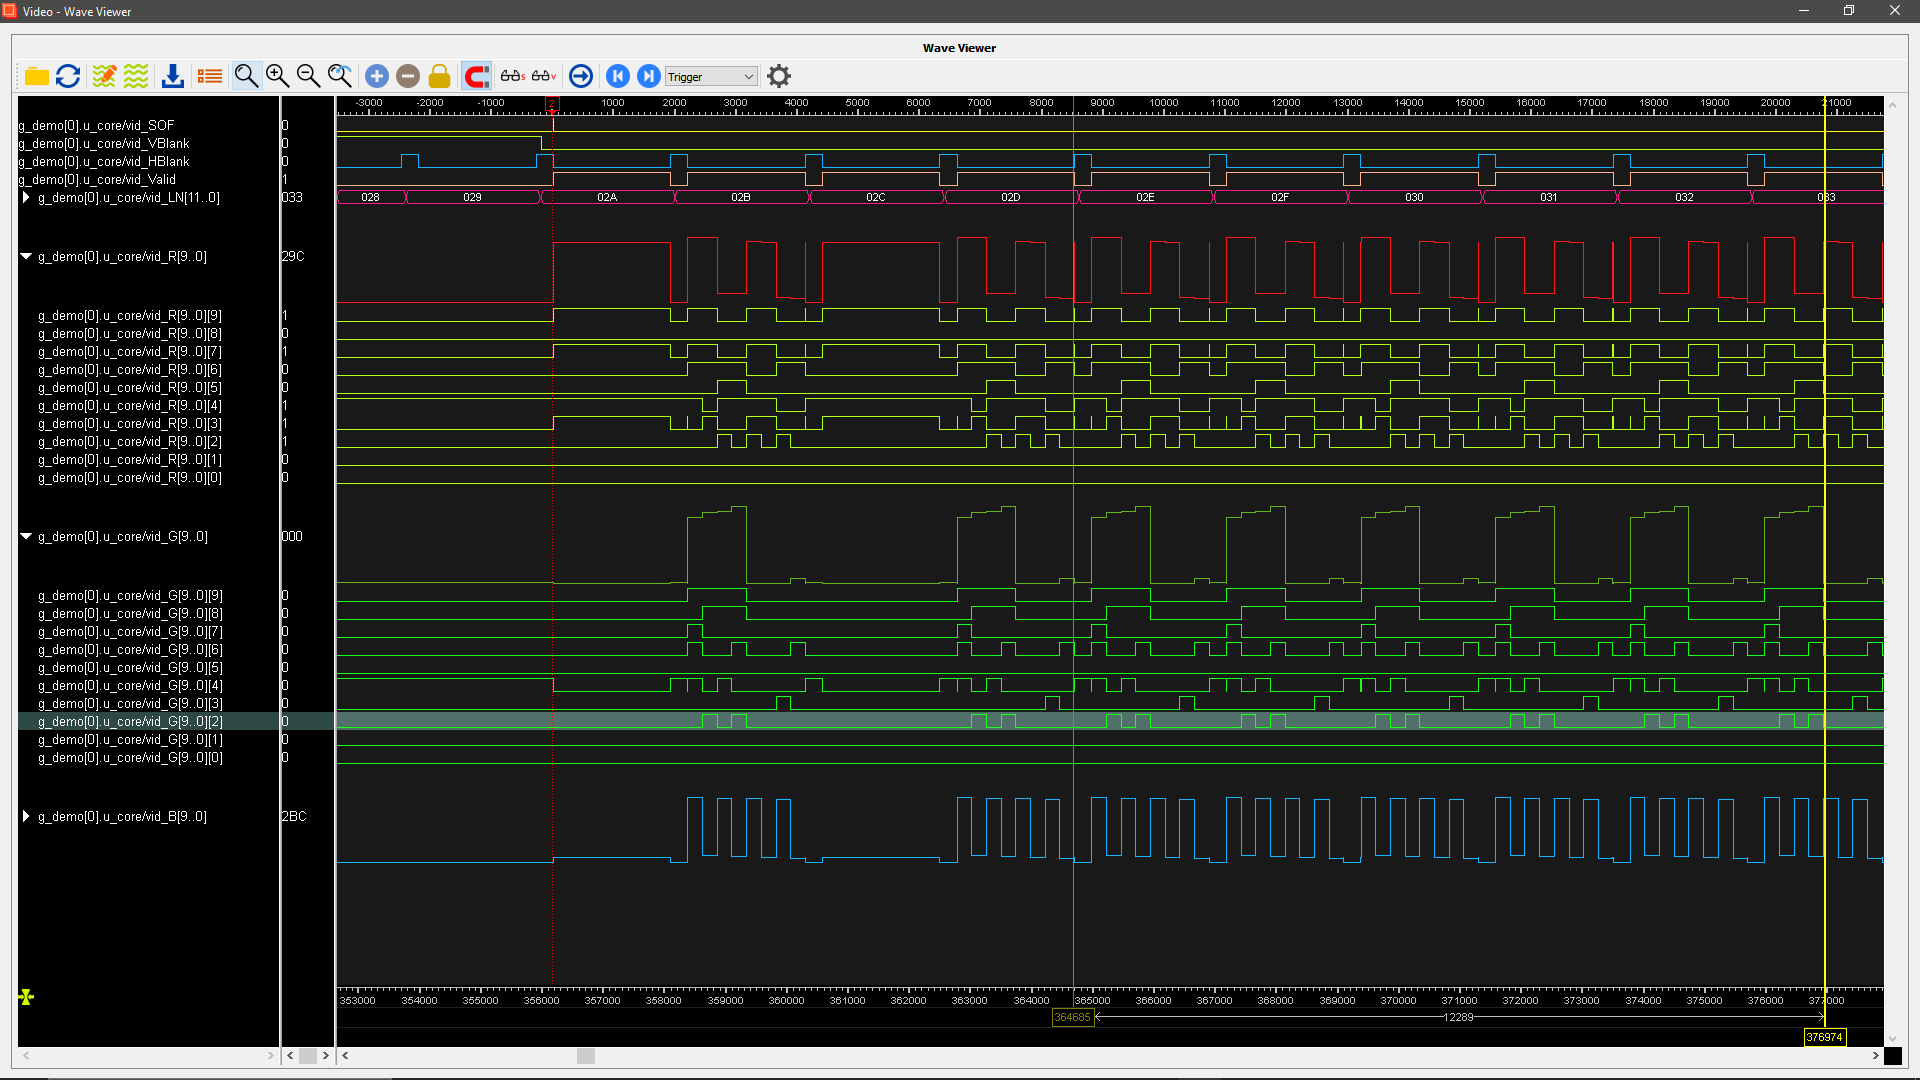 Myriad Waveform viewer main screen.